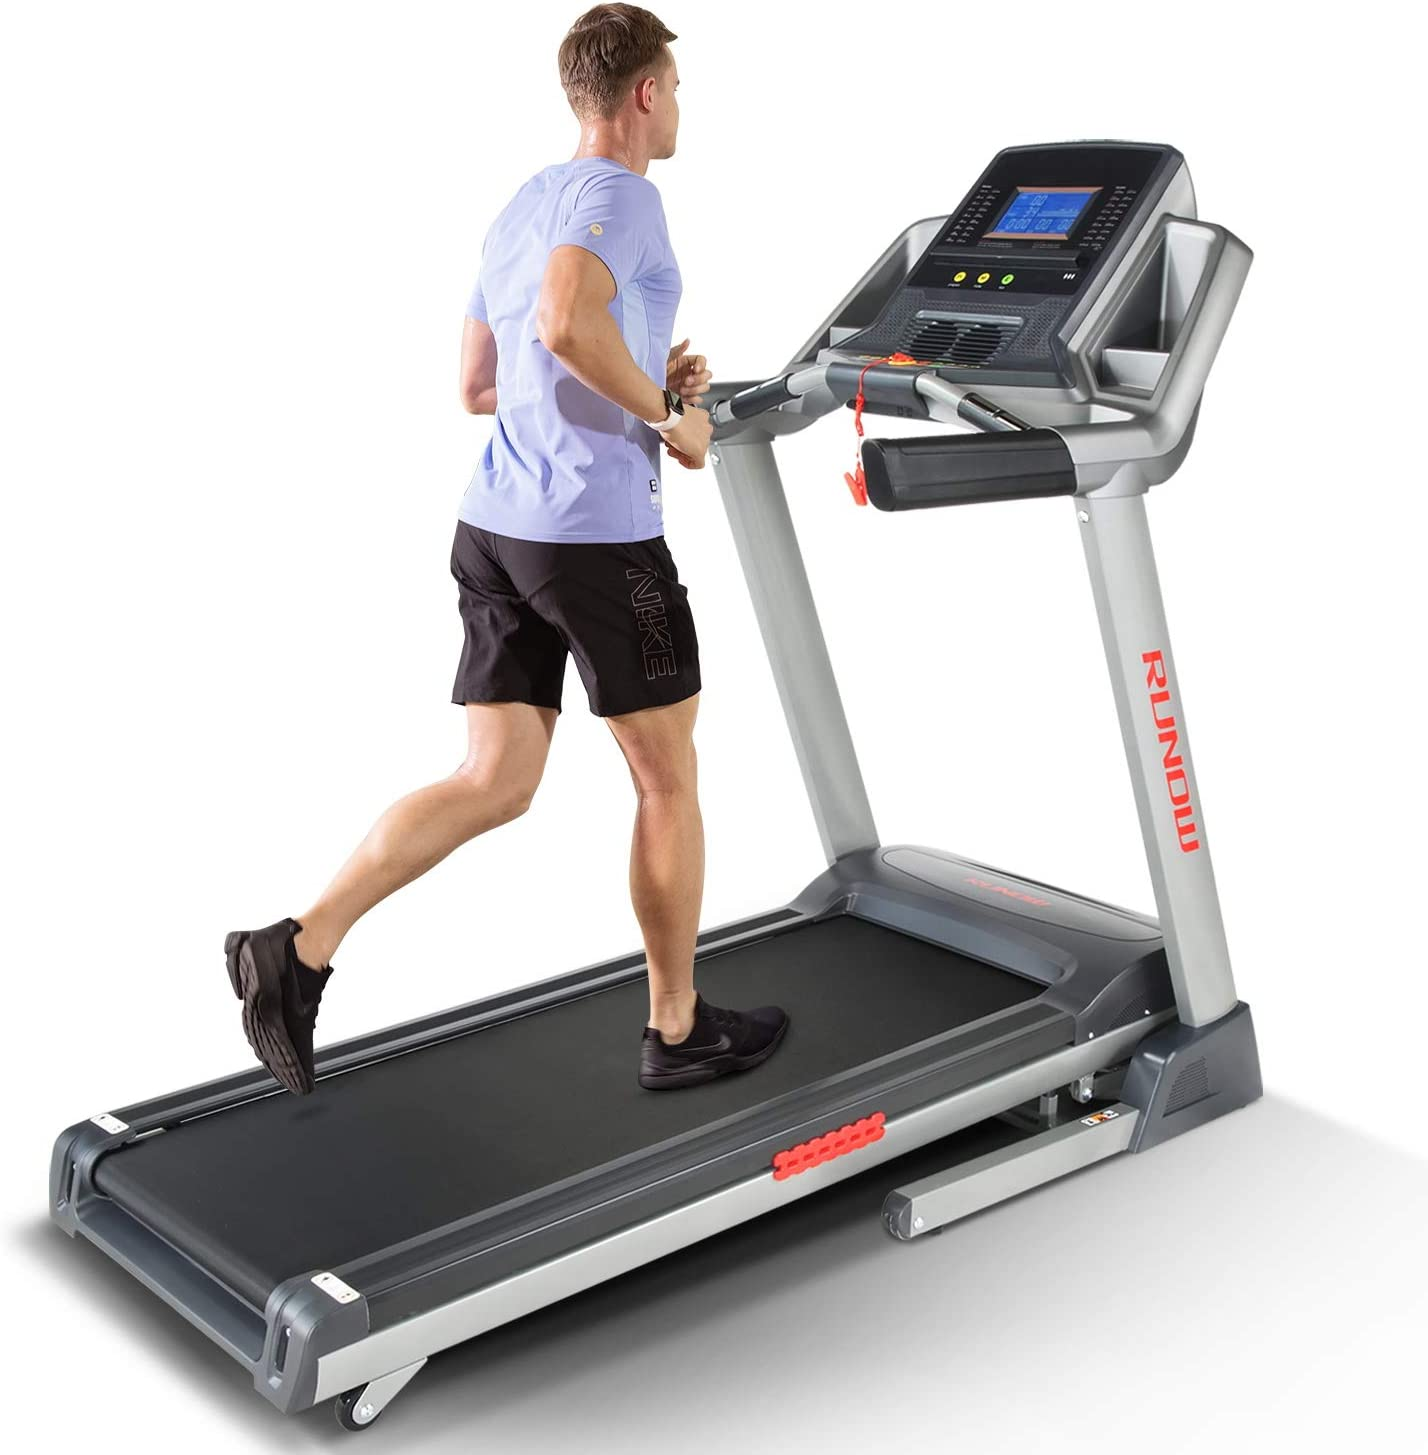 RUNOW Folding Some reservation Treadmill Auto Incline Treadmills for Ranking TOP16 HP 3.5 Home